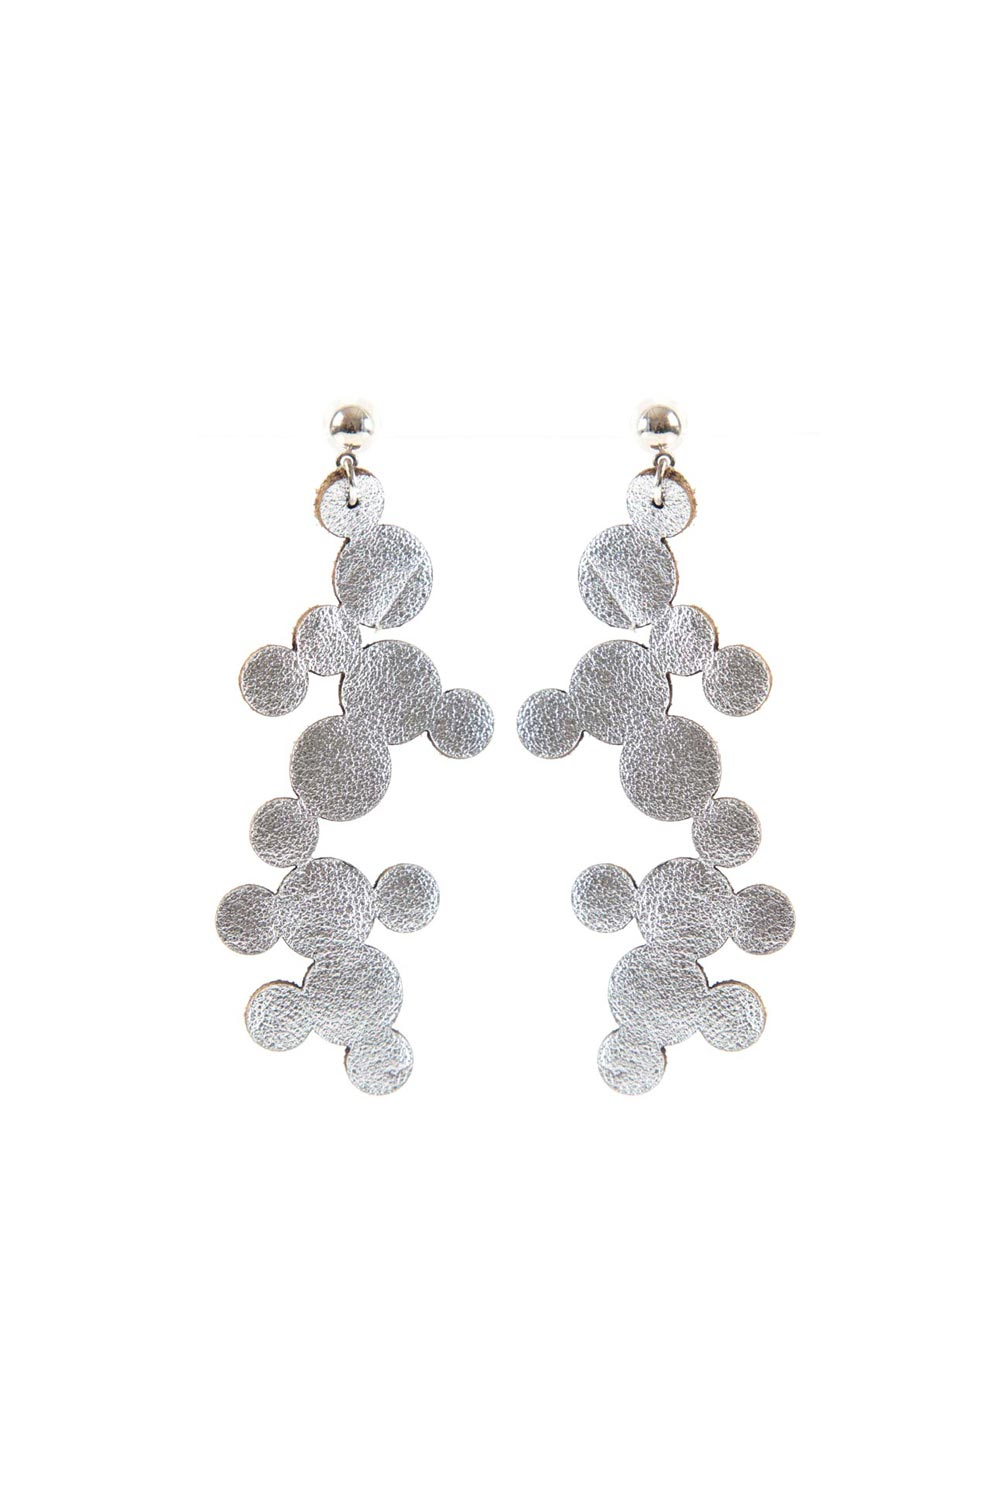 Bubbles Earrings - Large